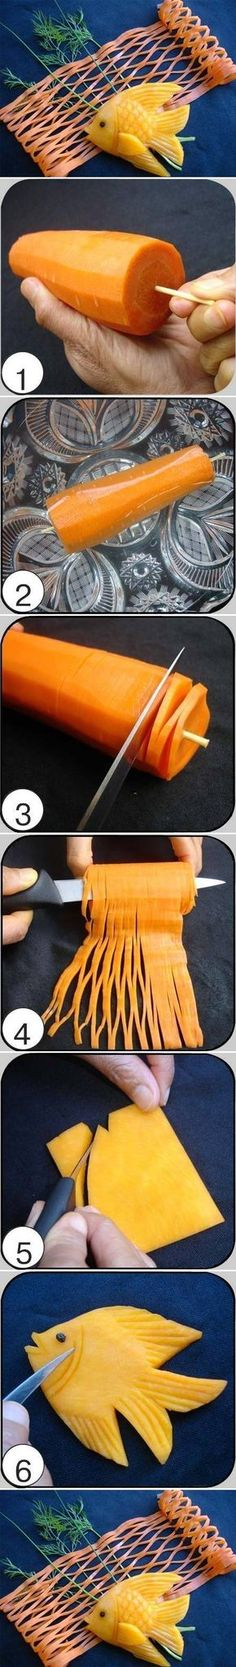 DIY Carrot Fish and Net